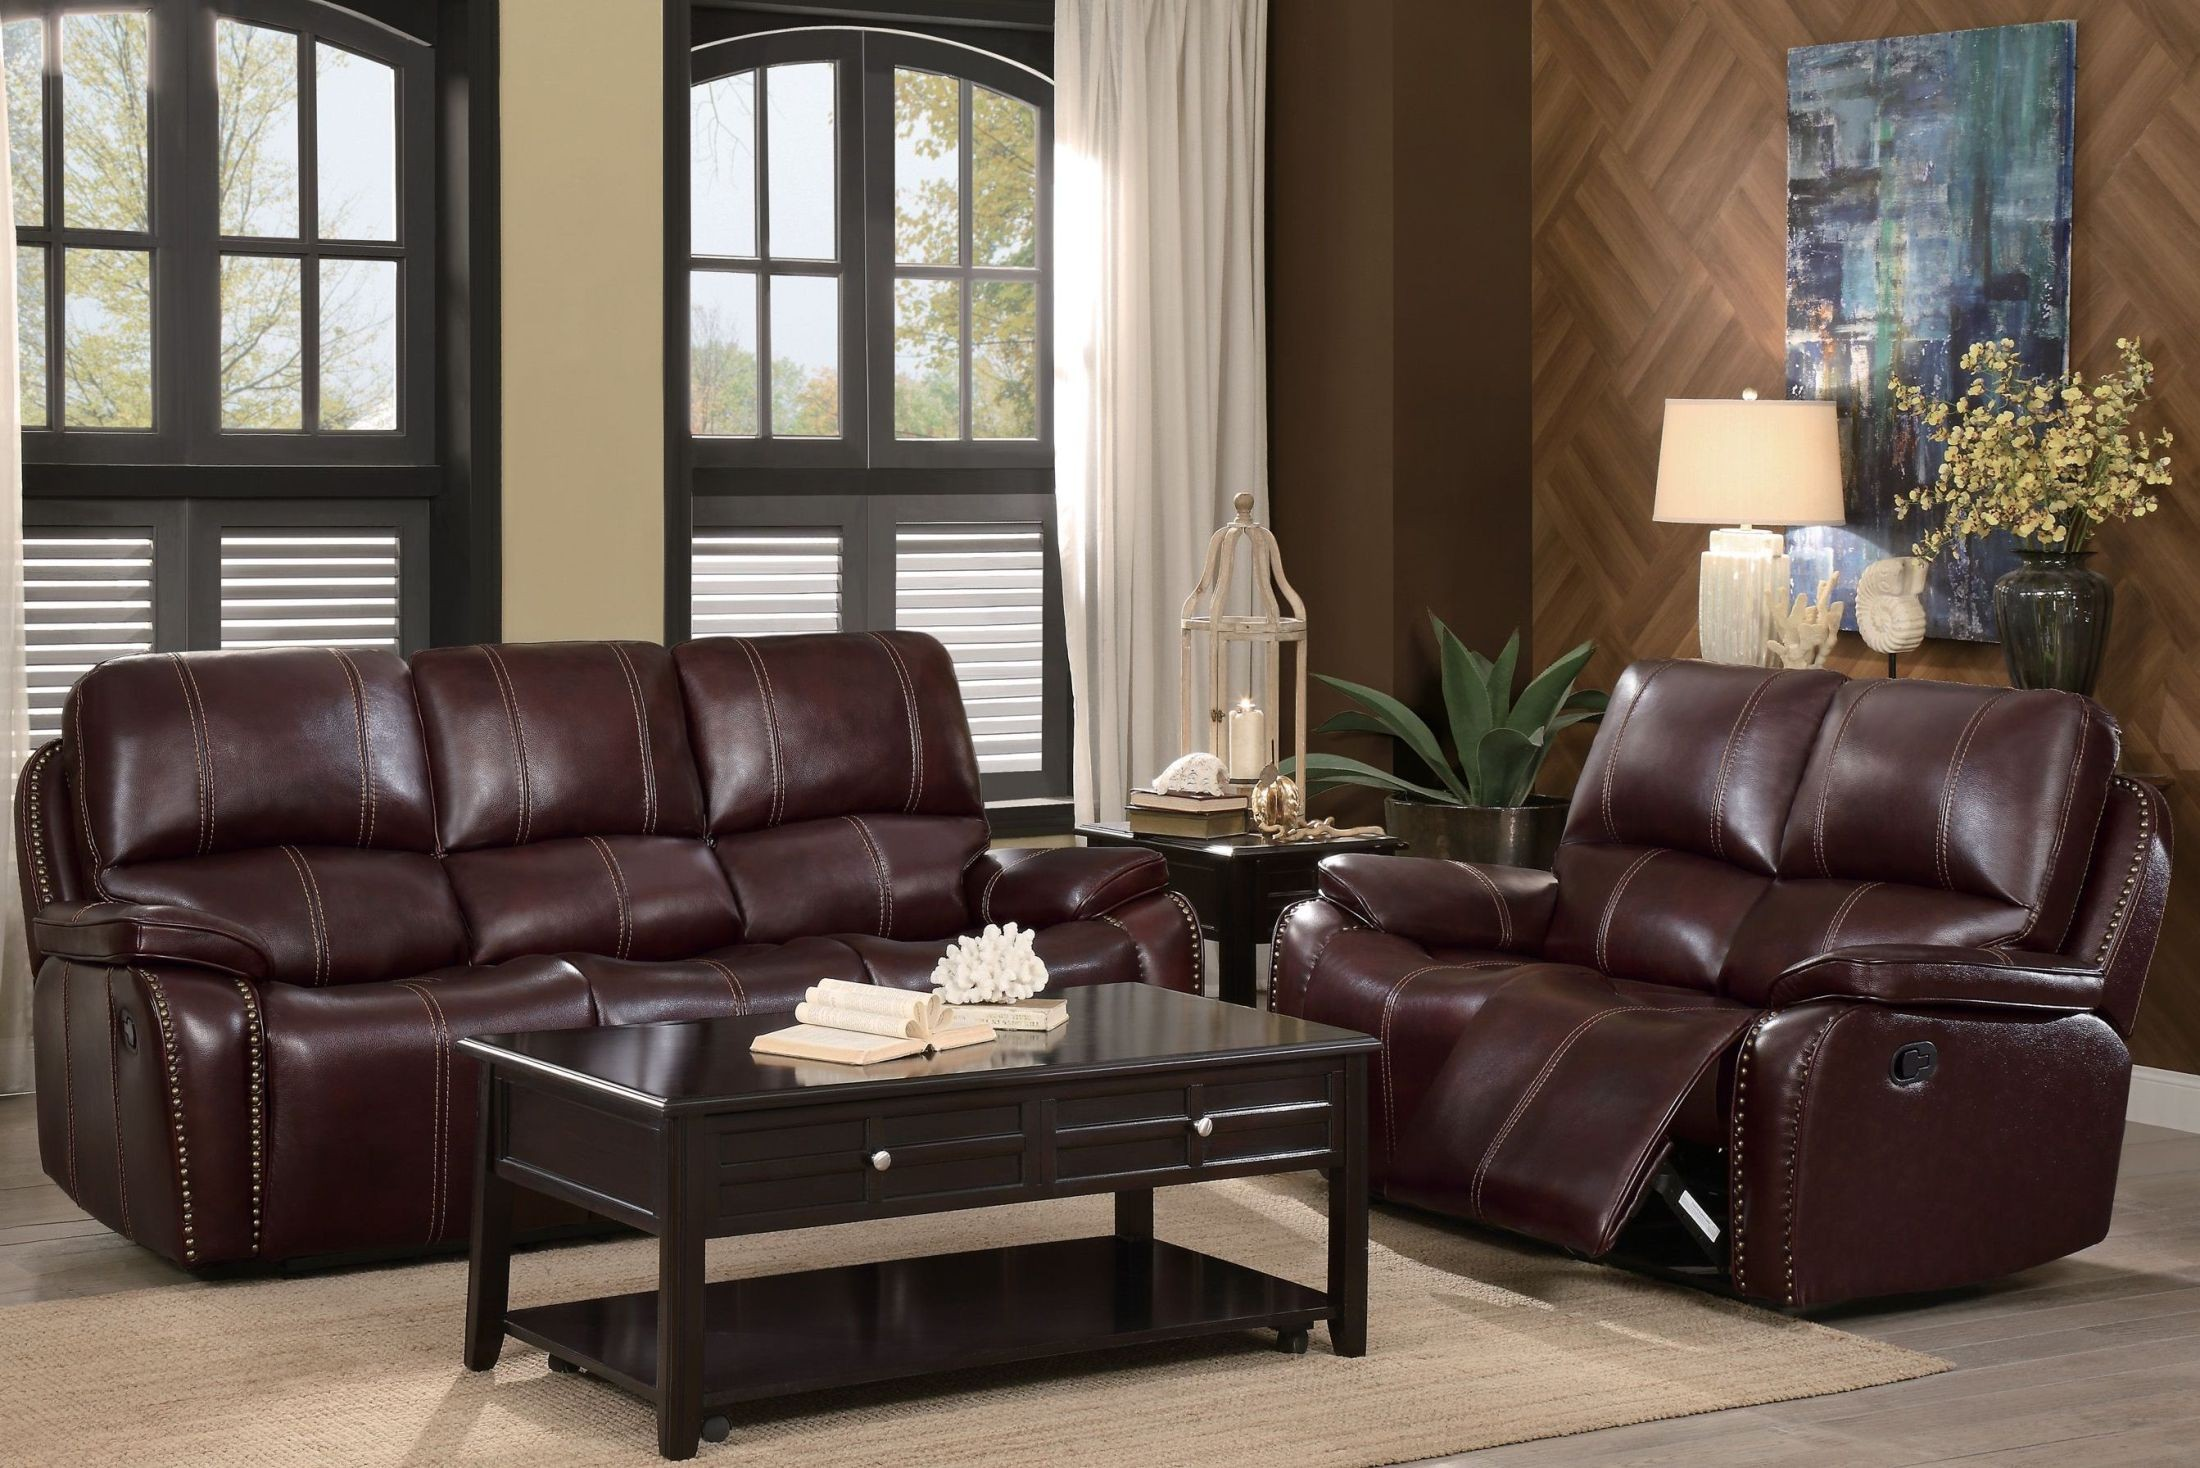 Haughton Brown Double Reclining Sofa From Homelegance Coleman  # Muebles Nicasio Orono